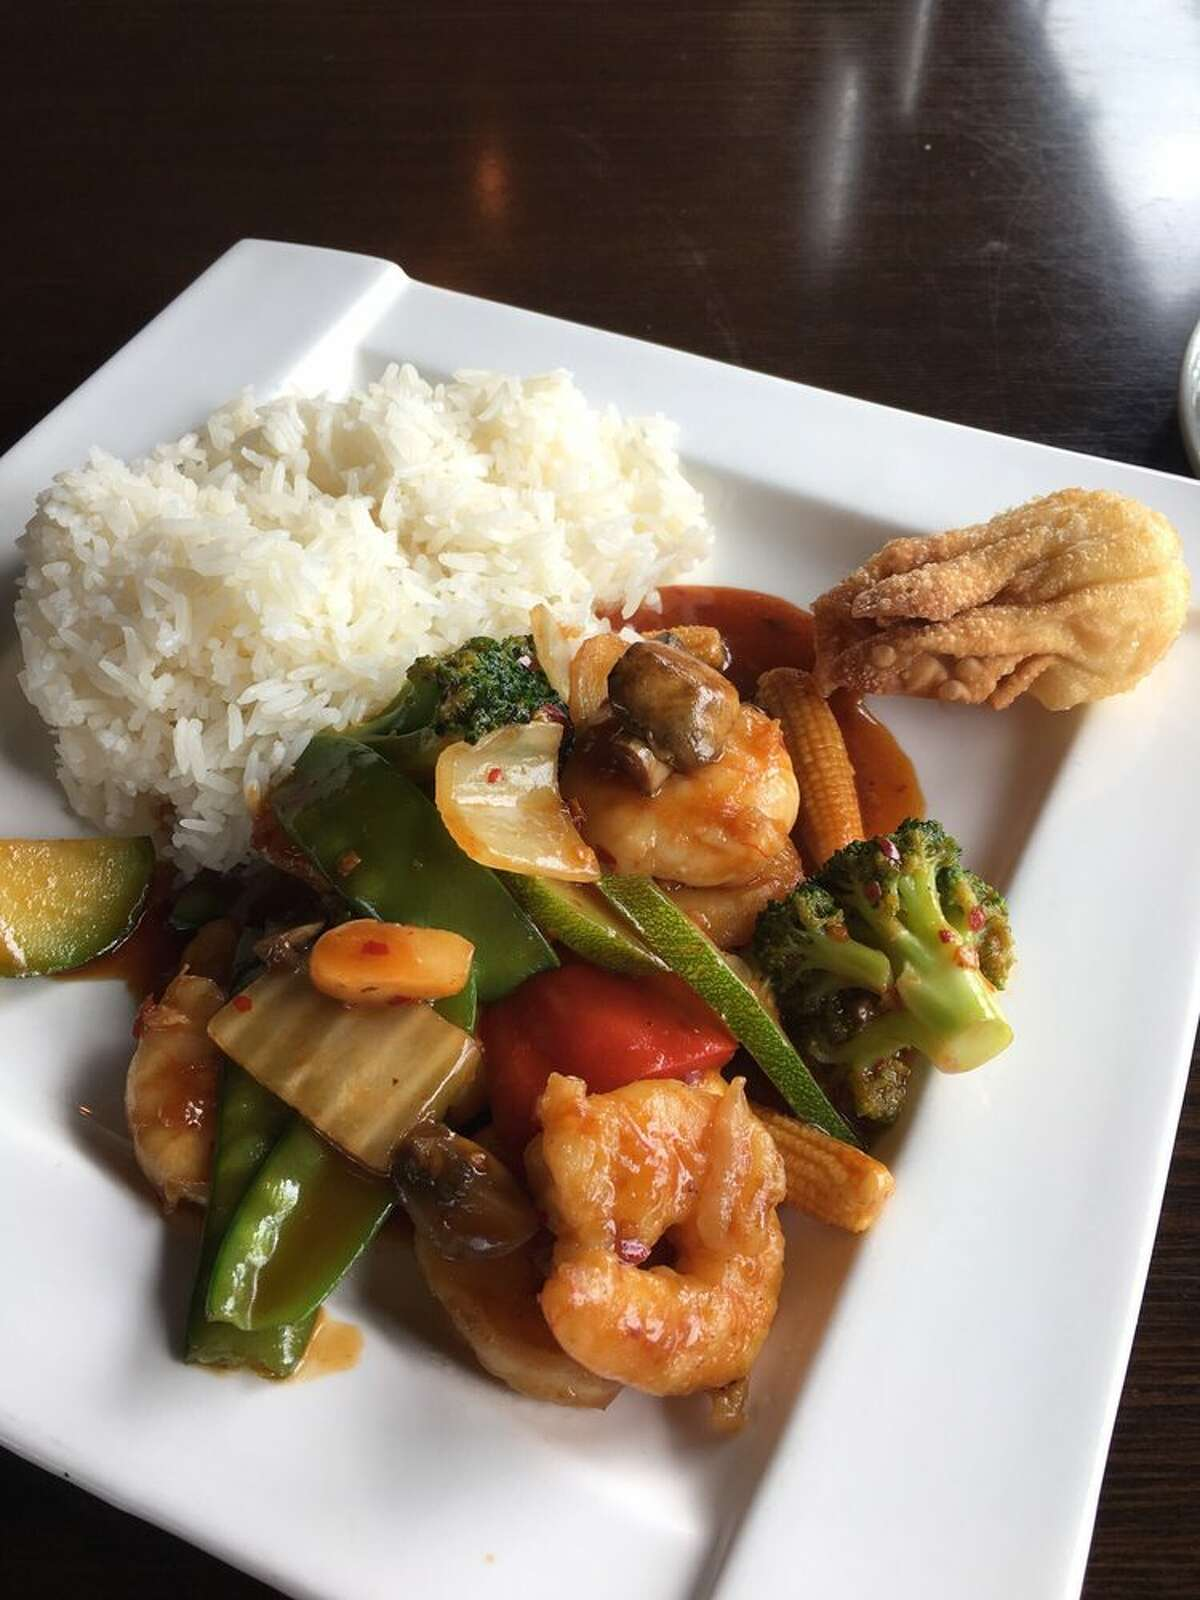 Pearland: Tang's Kitchen2975 Kingsley Drive, Ste. 139, PearlandRachelle T's review: